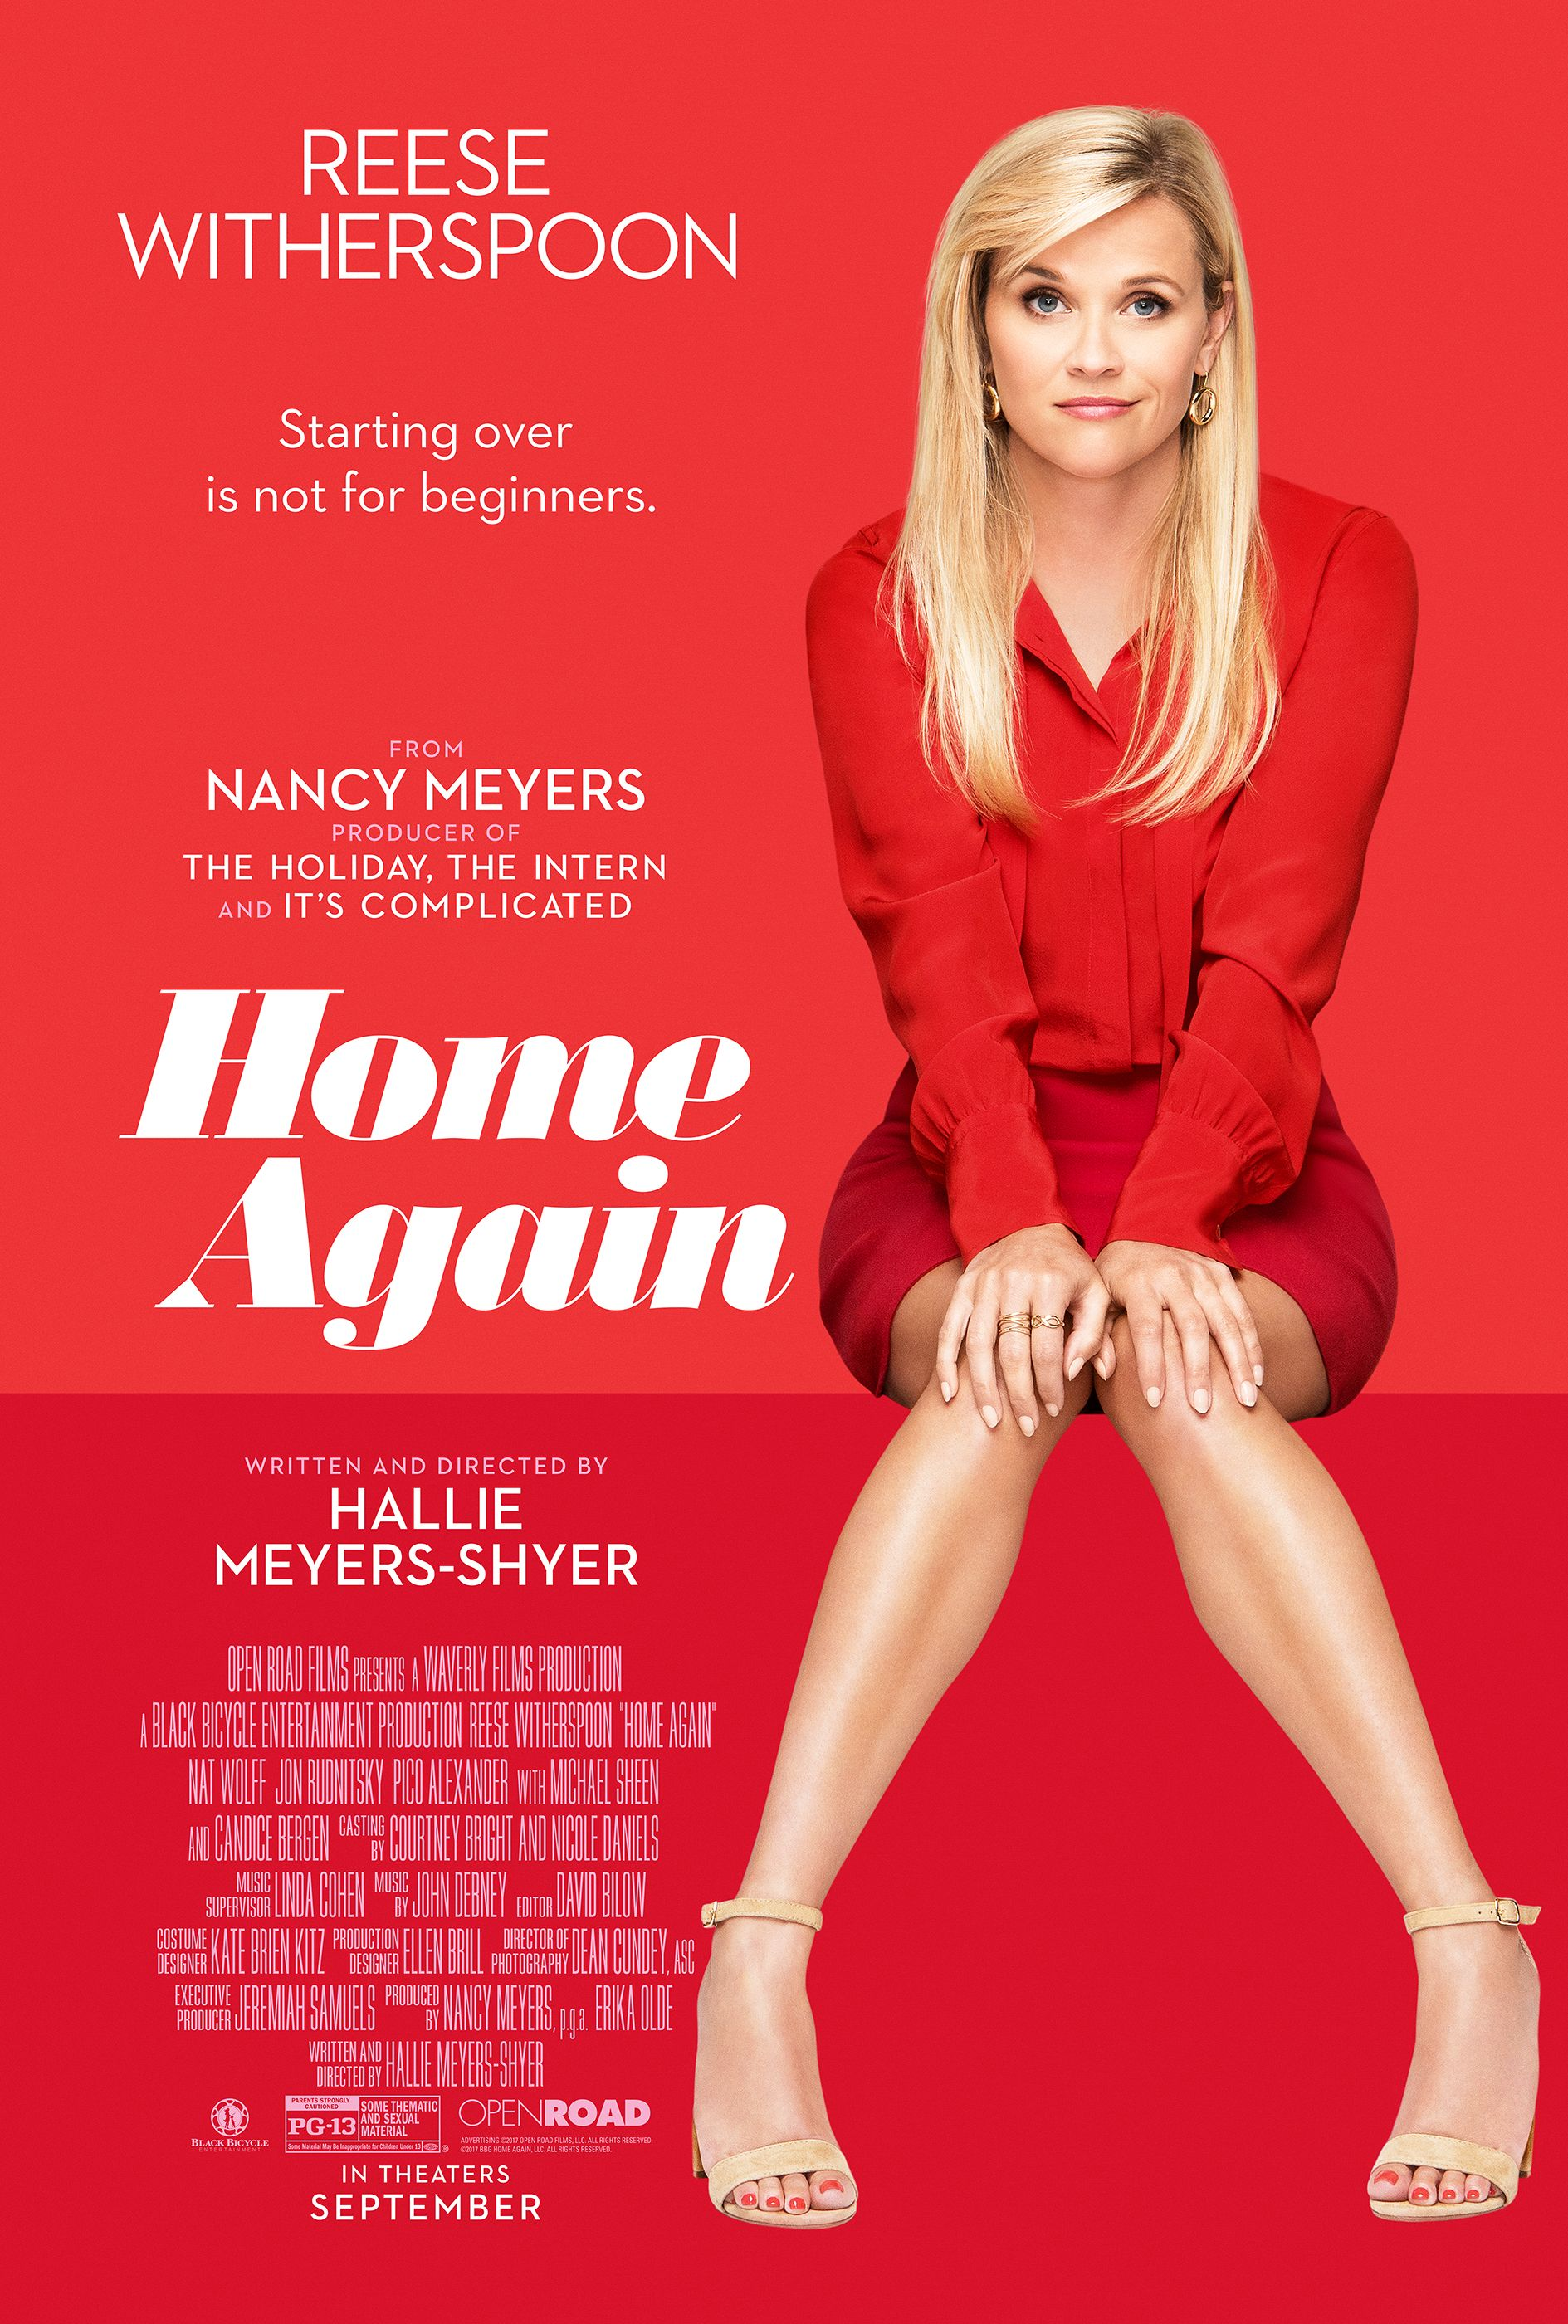 Reese Witherspoon Stars In Home Again From The Producer Of The Holiday The Intern And It S Complicated Streaming Movies Home Again Full Movies Online Free